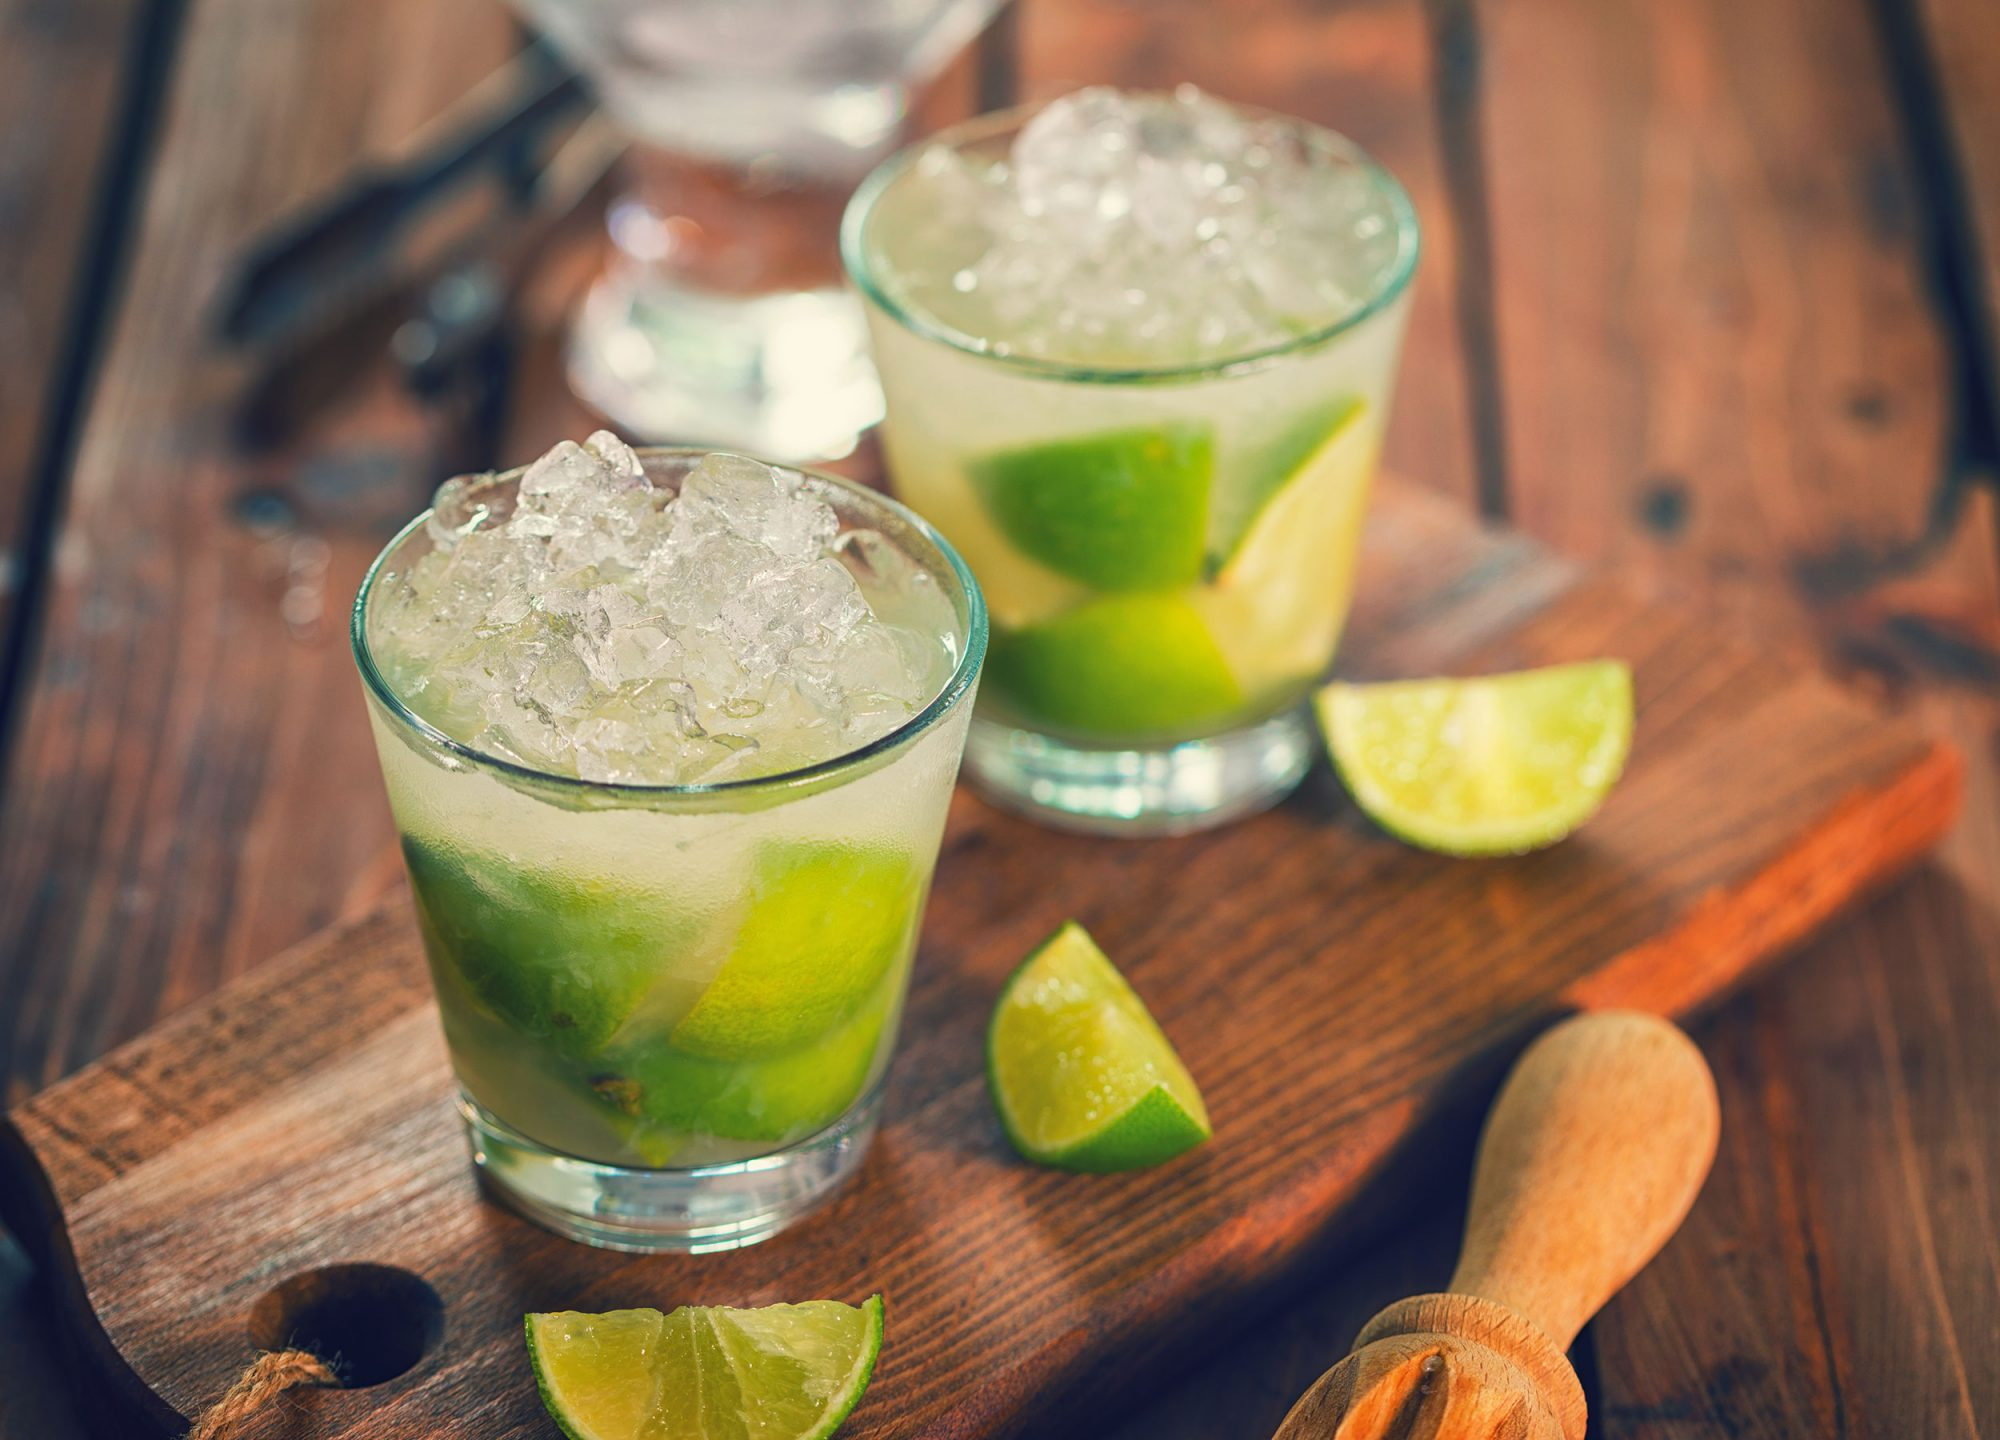 Margaritas, Schmargaritas: Why You Should Drink Caipirinhas Instead